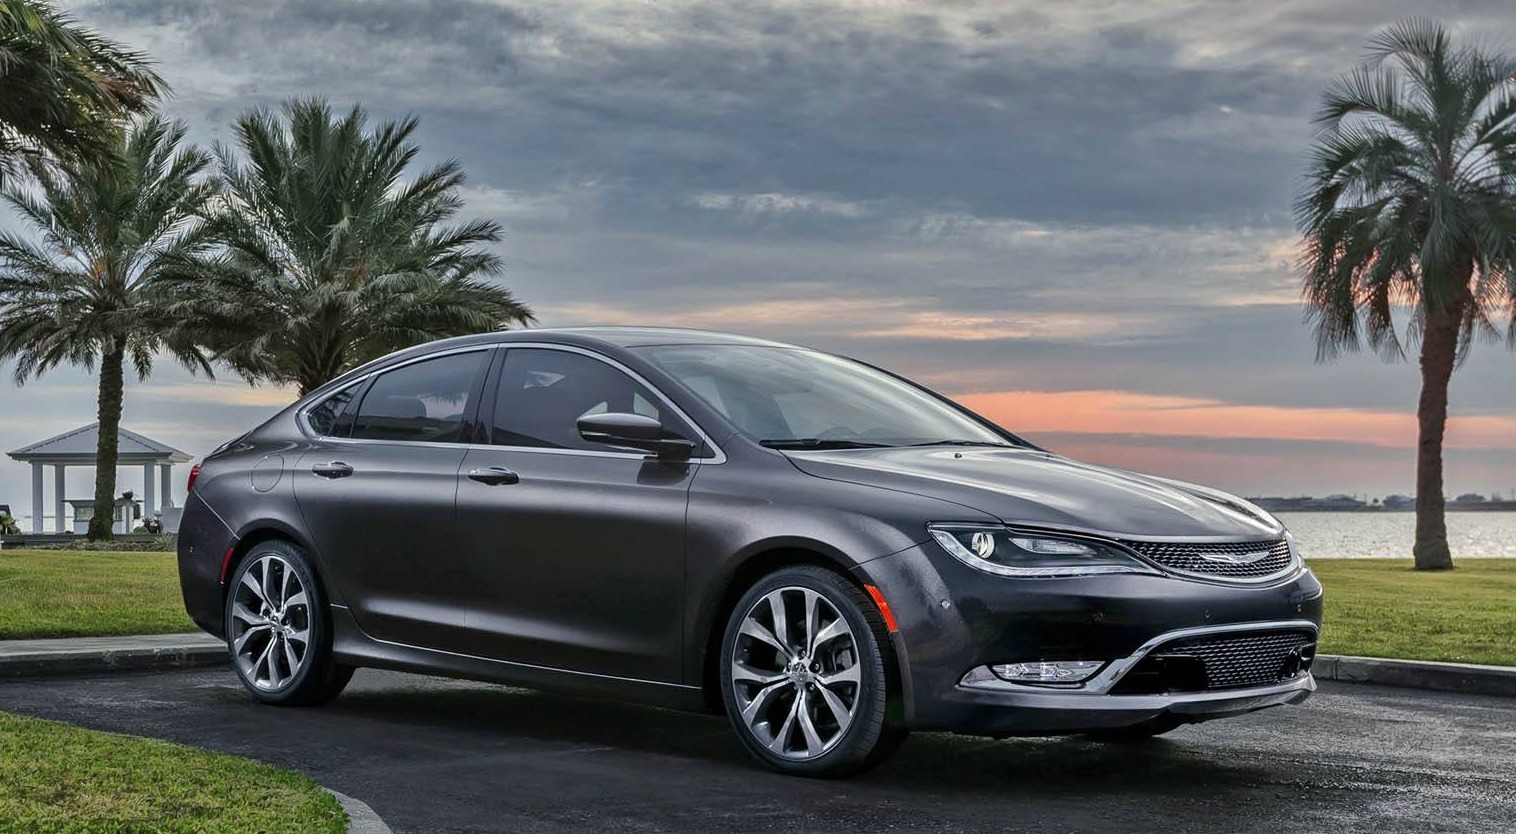 2015 Chrysler 200 front